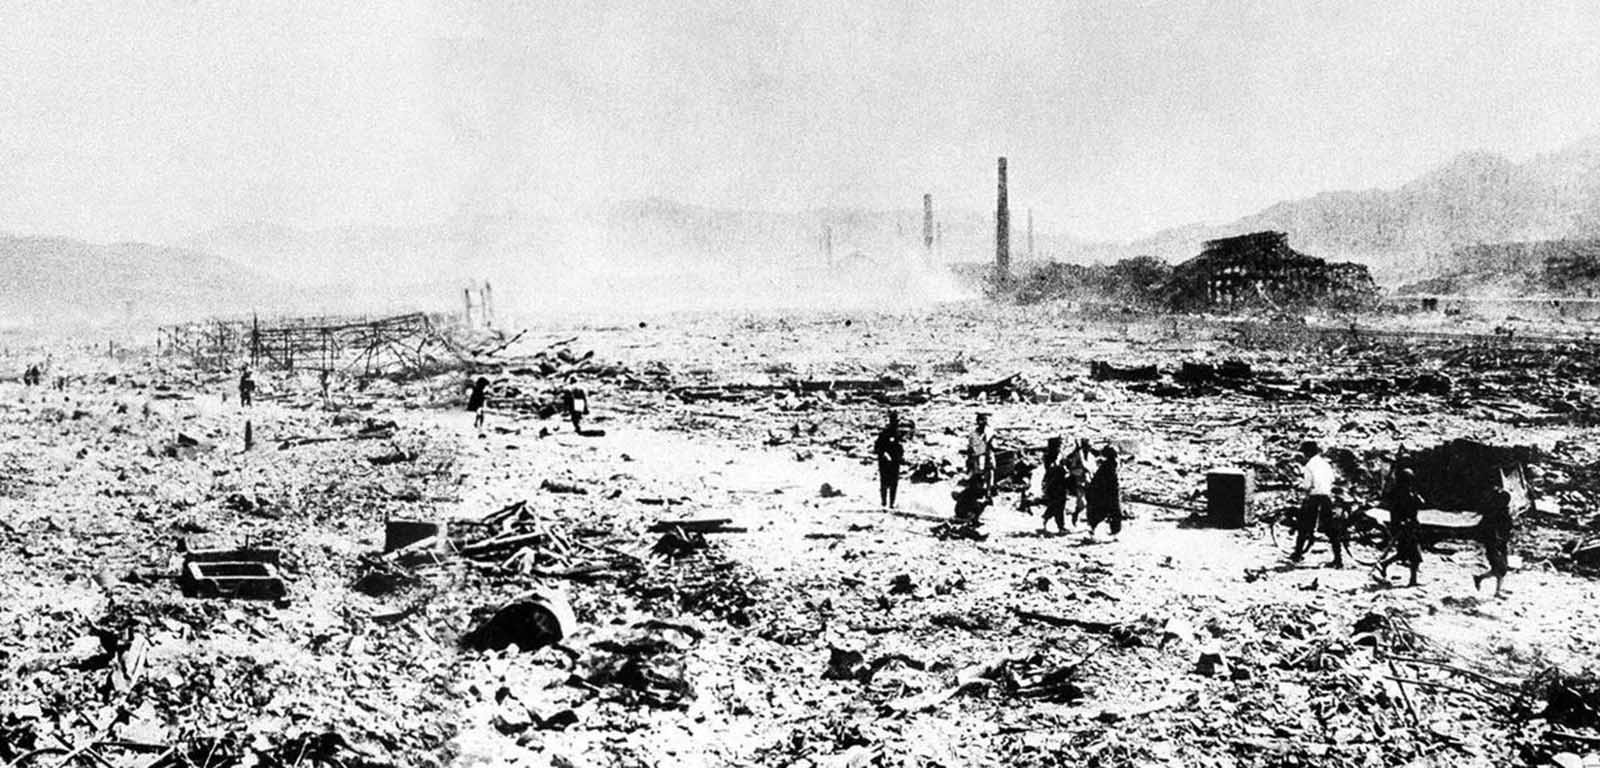 This picture made shortly after the August 9, 1945 atomic bombing, shows workers carrying away debris in a devastated area of Nagasaki, Japan. This picture obtained by the U.S. Army from files of Domei, the official Japanese news agency, was the first ground view of the nuclear destruction in Nagasaki.